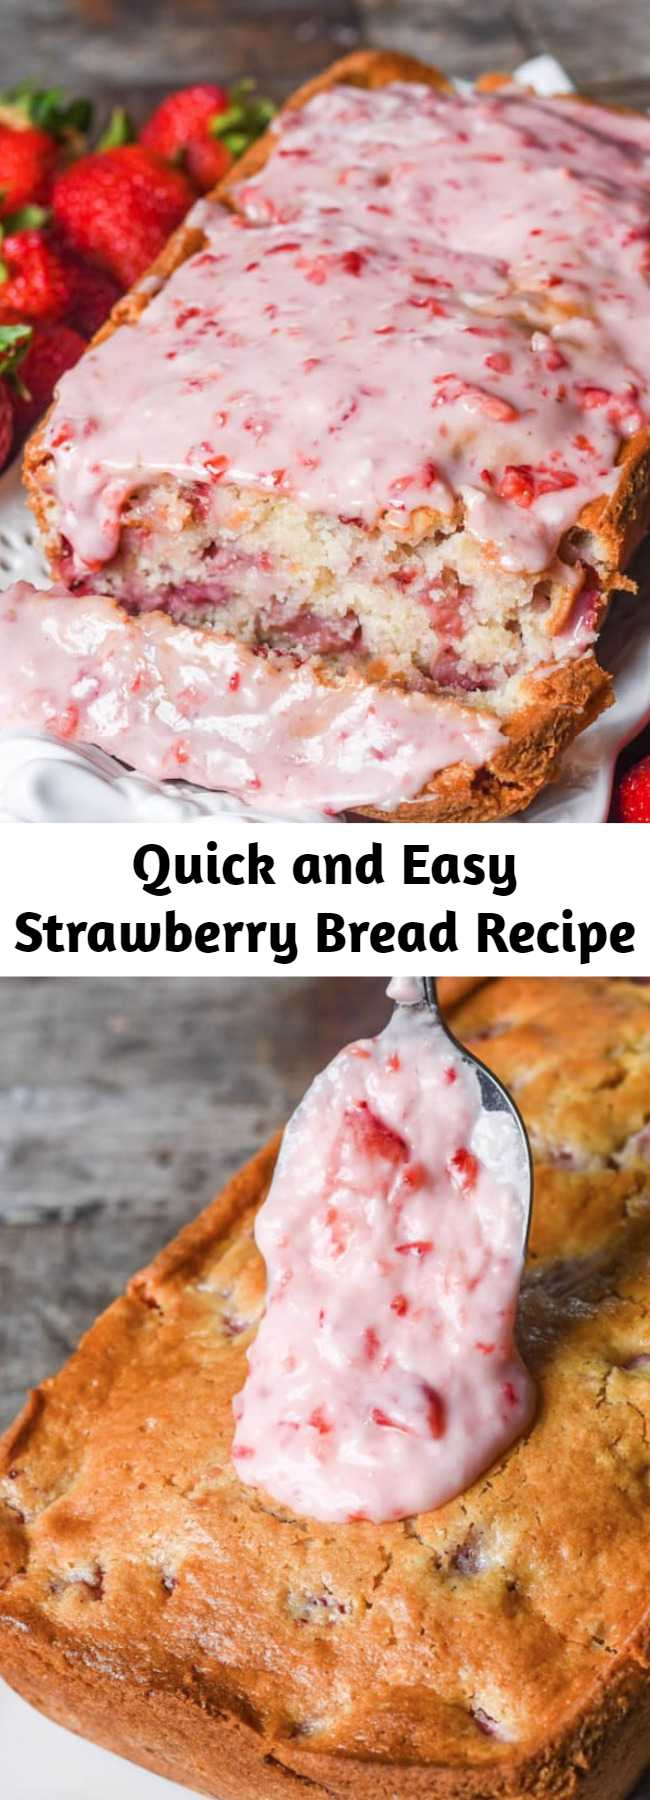 Quick and Easy Strawberry Bread Recipe - Try this fresh strawberry bread with melt-in-your-mouth strawberry glaze. This quick bread recipe comes together in just 10 minutes. If you love fruit breads, you'll also love our cherry bread!